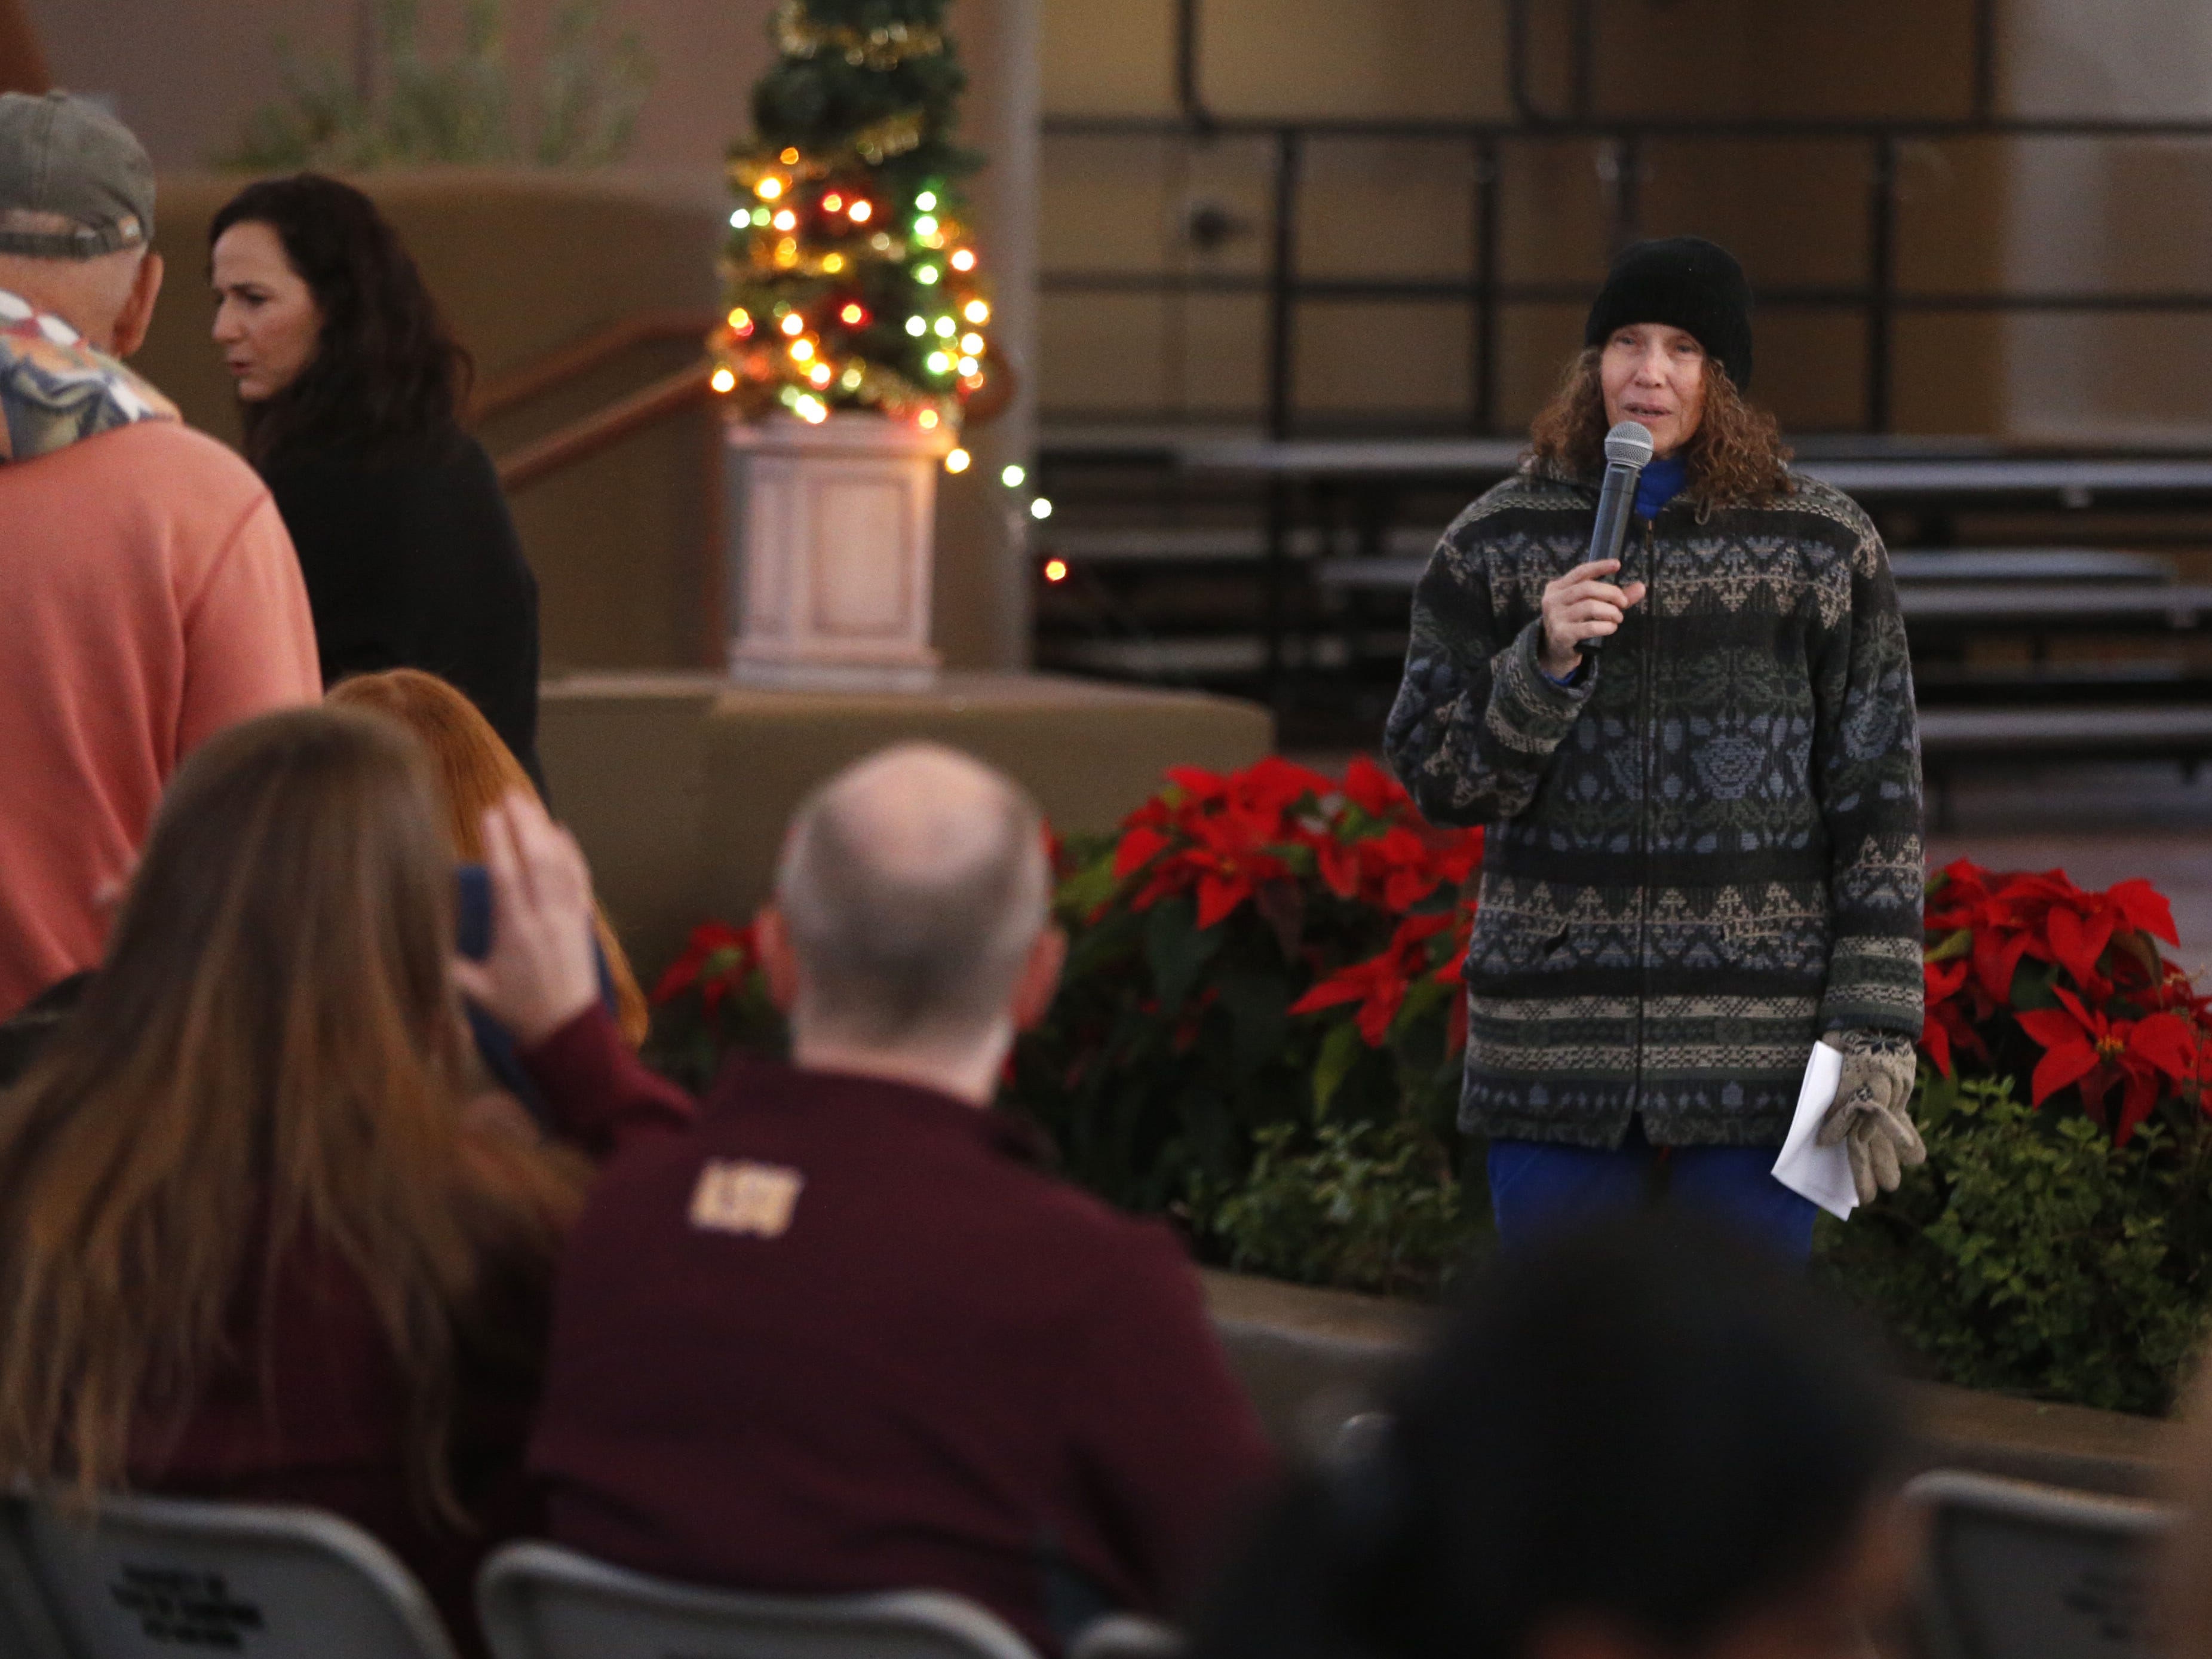 Ora Kurland, founder of Jewish Social Group of Cave Creek and Carefree, asks the people to join her on stage around the menorah during a Menorah Lighting Ceremony on the first night of Hanukkah at Carefree Desert Gardens in Carefree, Ariz. on December 2, 2018.